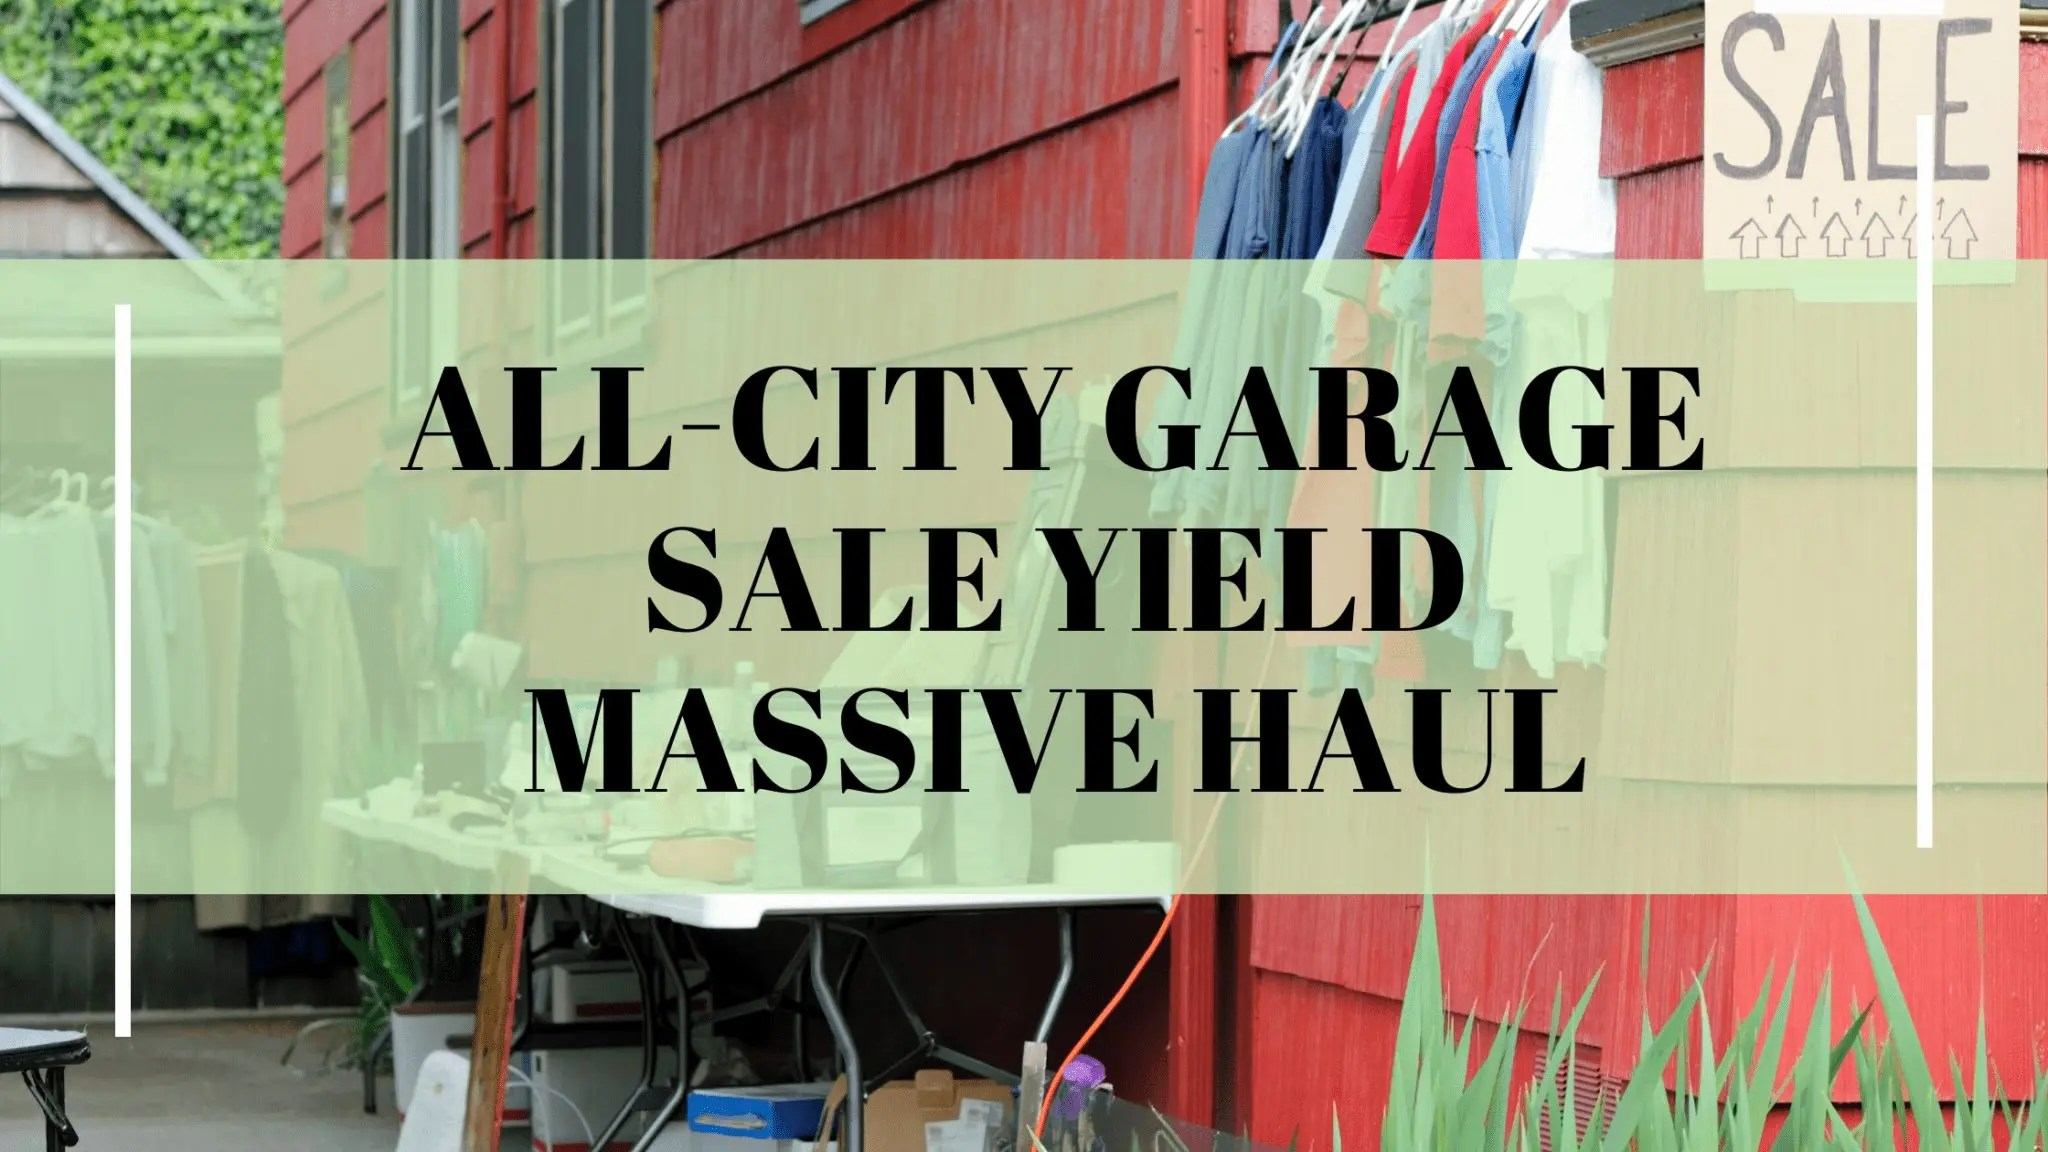 All-City Garage Sale Yield Massive Haul on Junking with Stacy